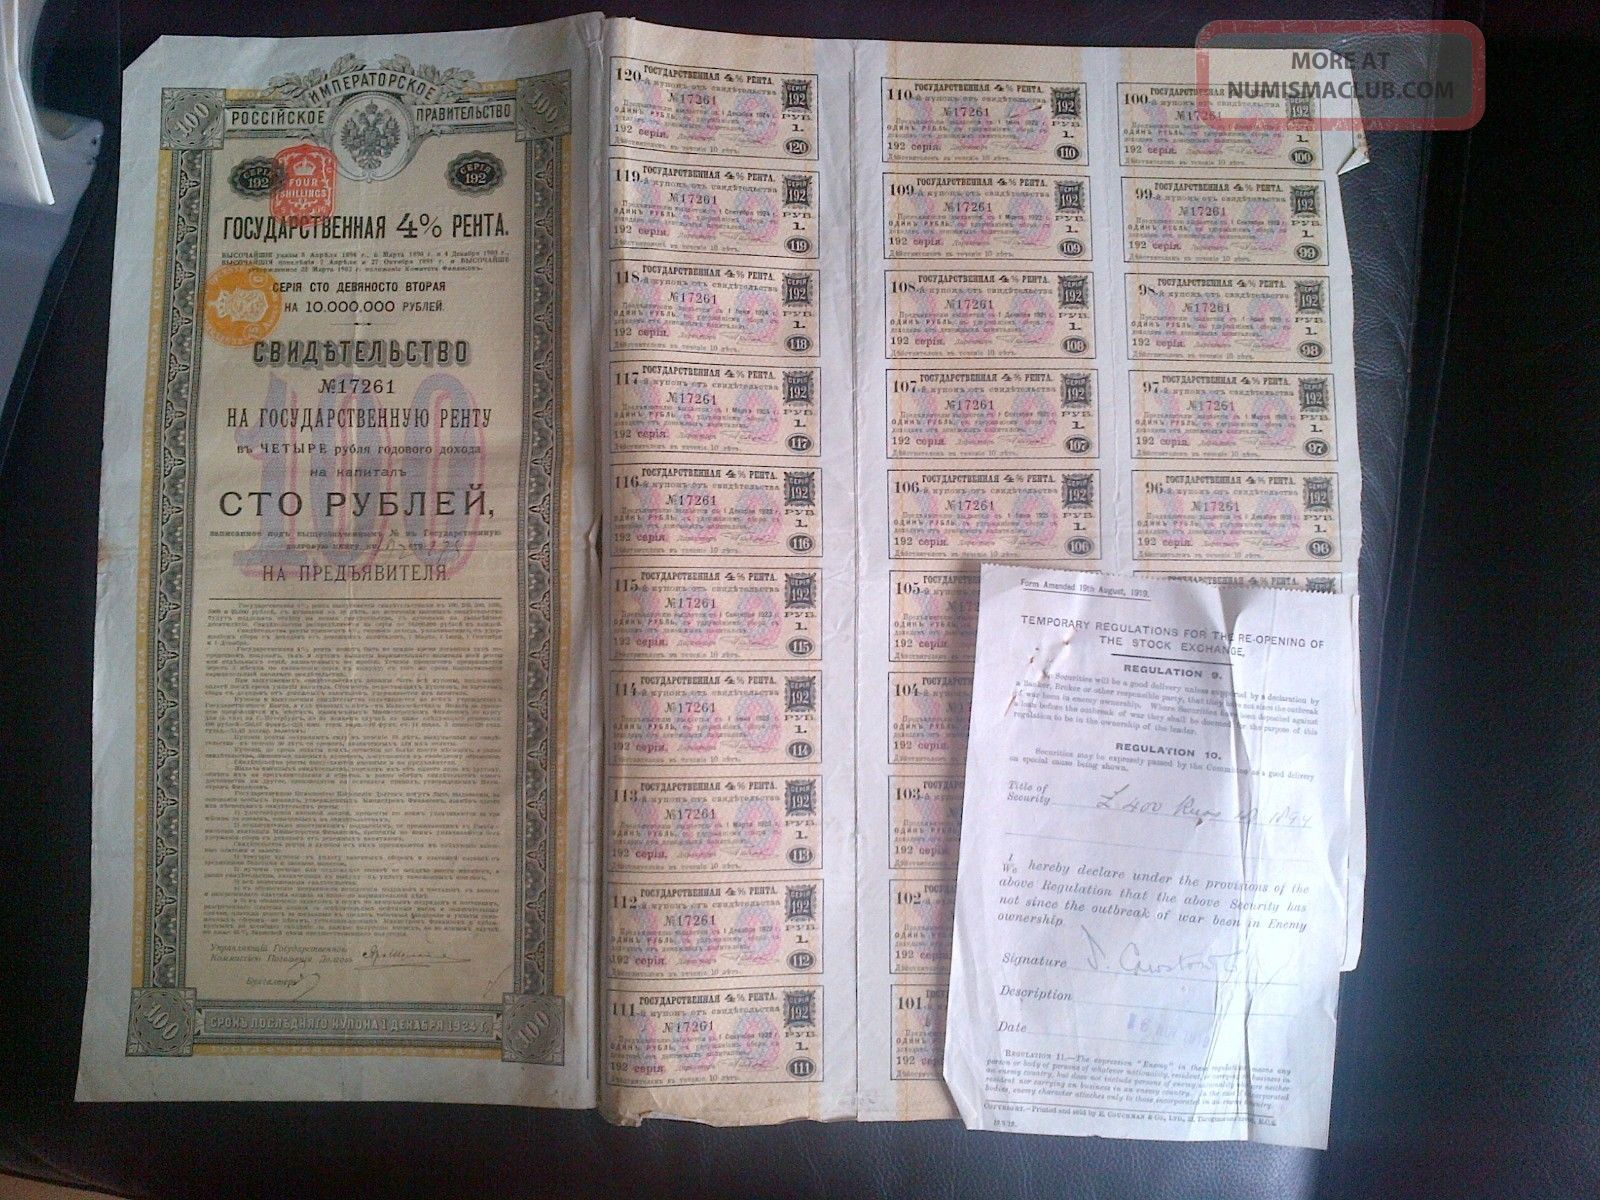 Russian Imperial 1914 100 Rbles 4% Yellow Bond W/coupons Vfine W/cert World photo